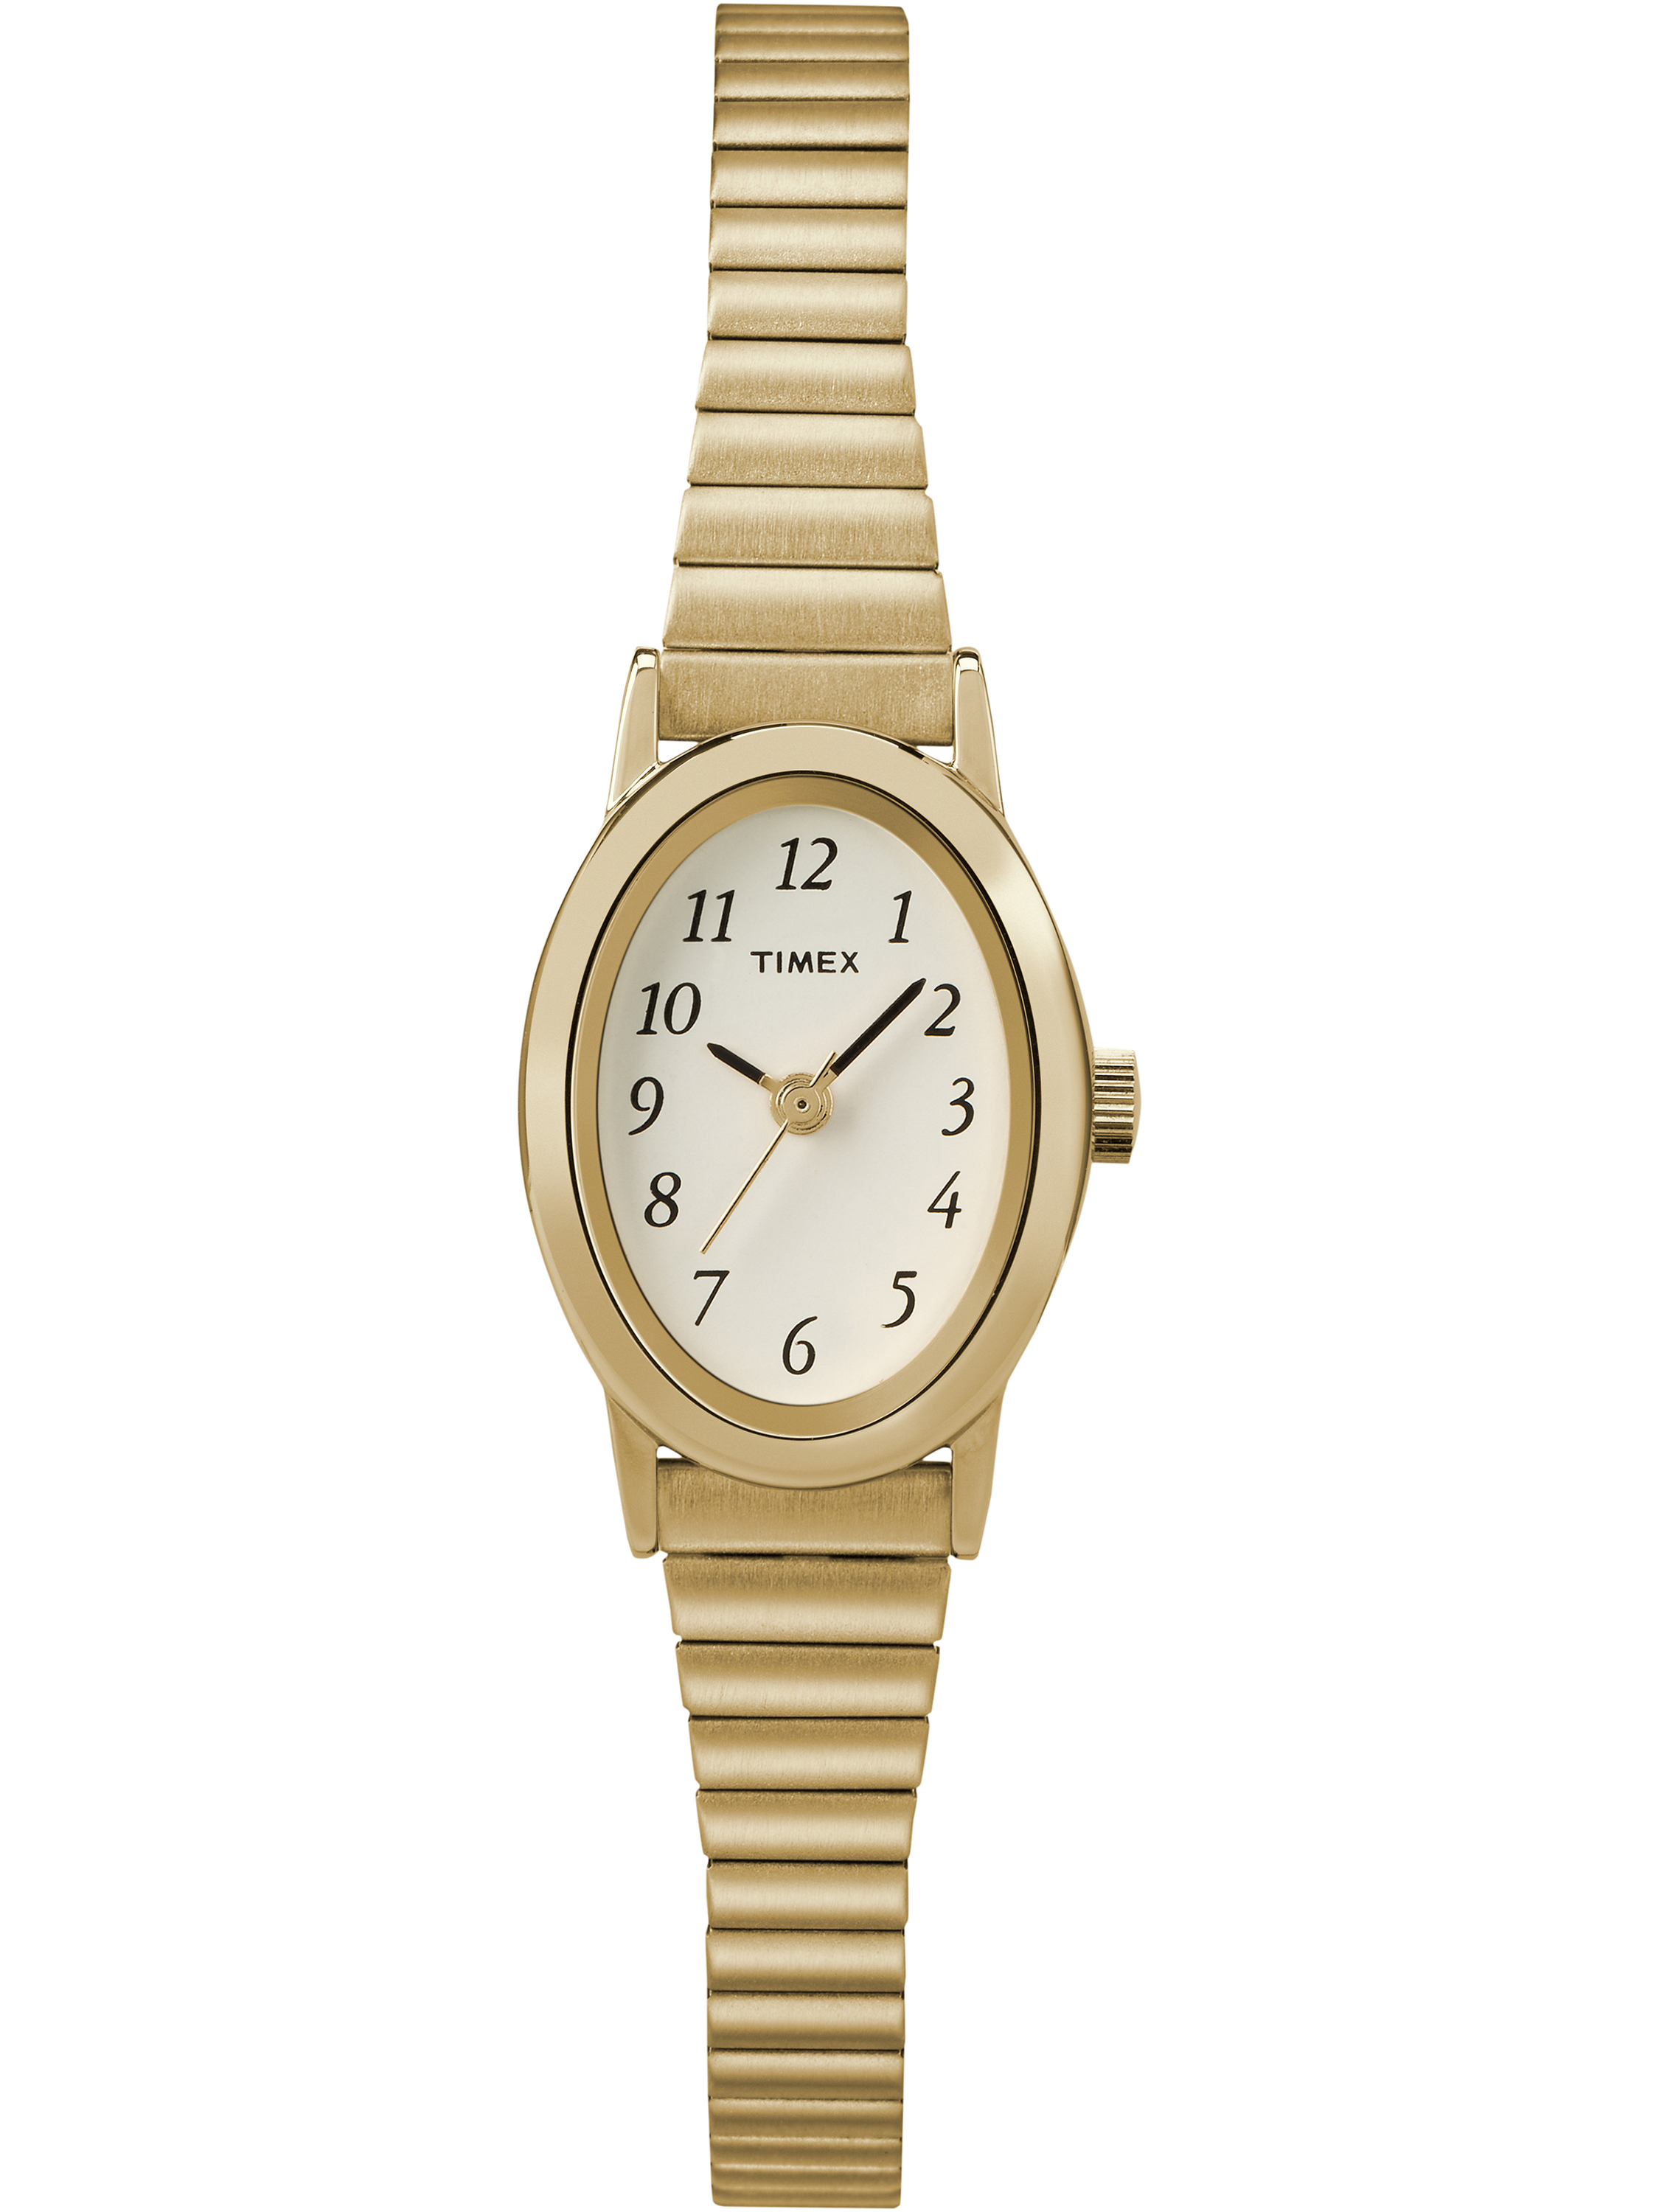 Timex Women's Cavatina Gold-Tone Stainless Steel Expansion Band Watch